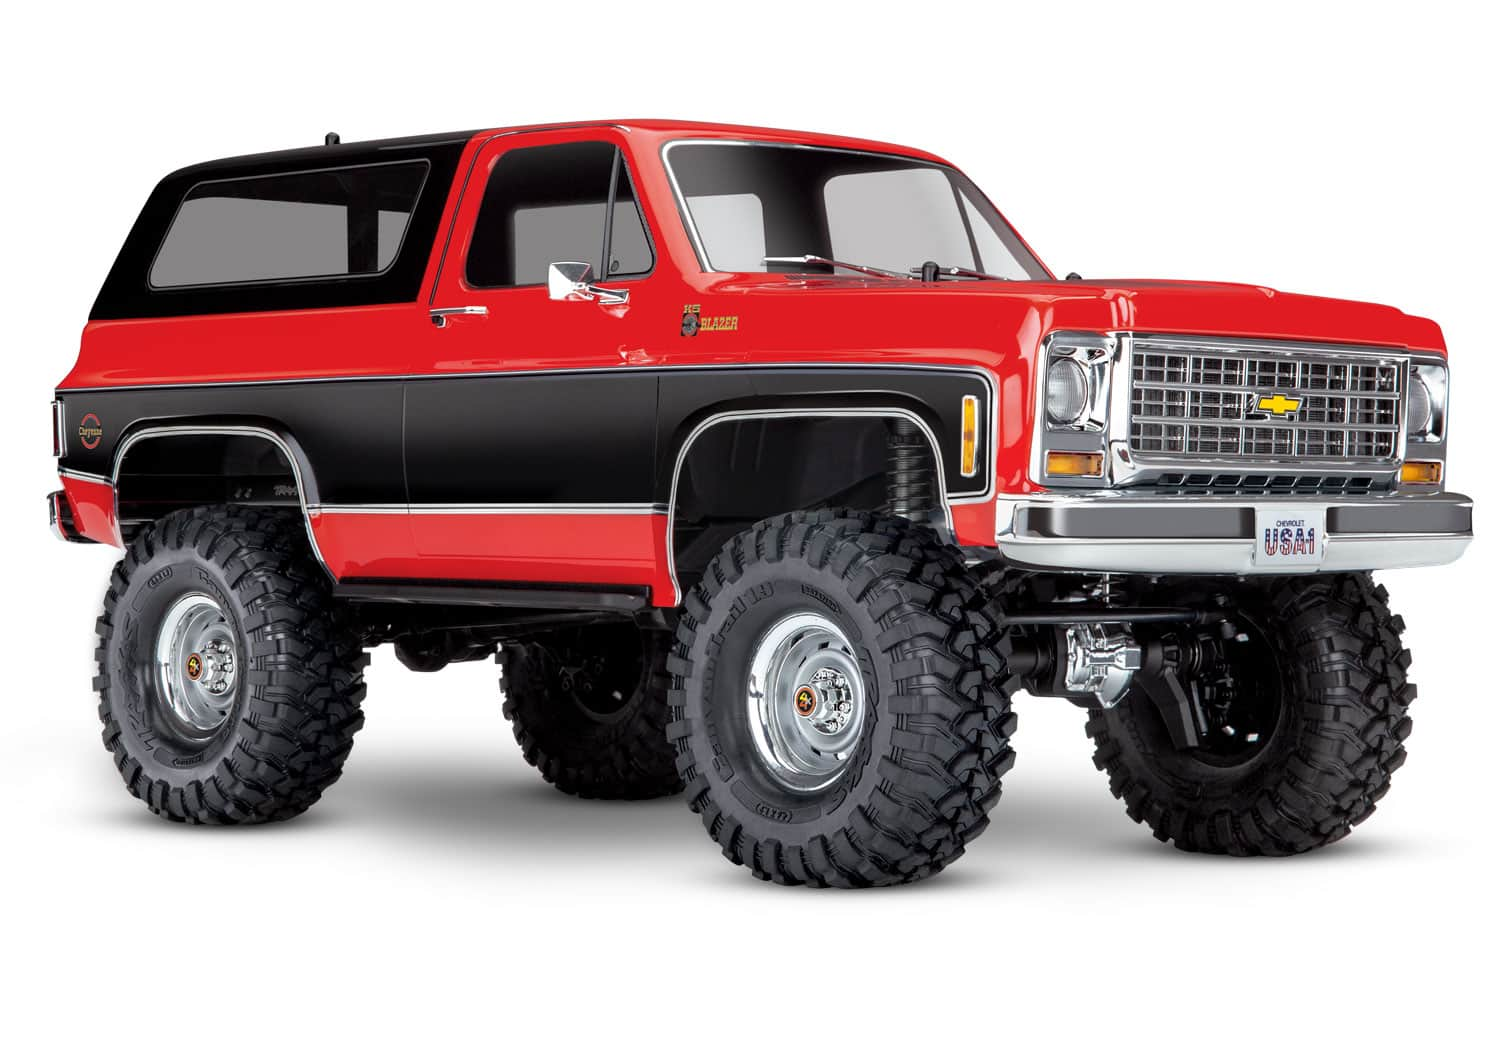 The Traxxas TRX-4 Lineup Branches Out with the 1979 Chevy K5 Blazer